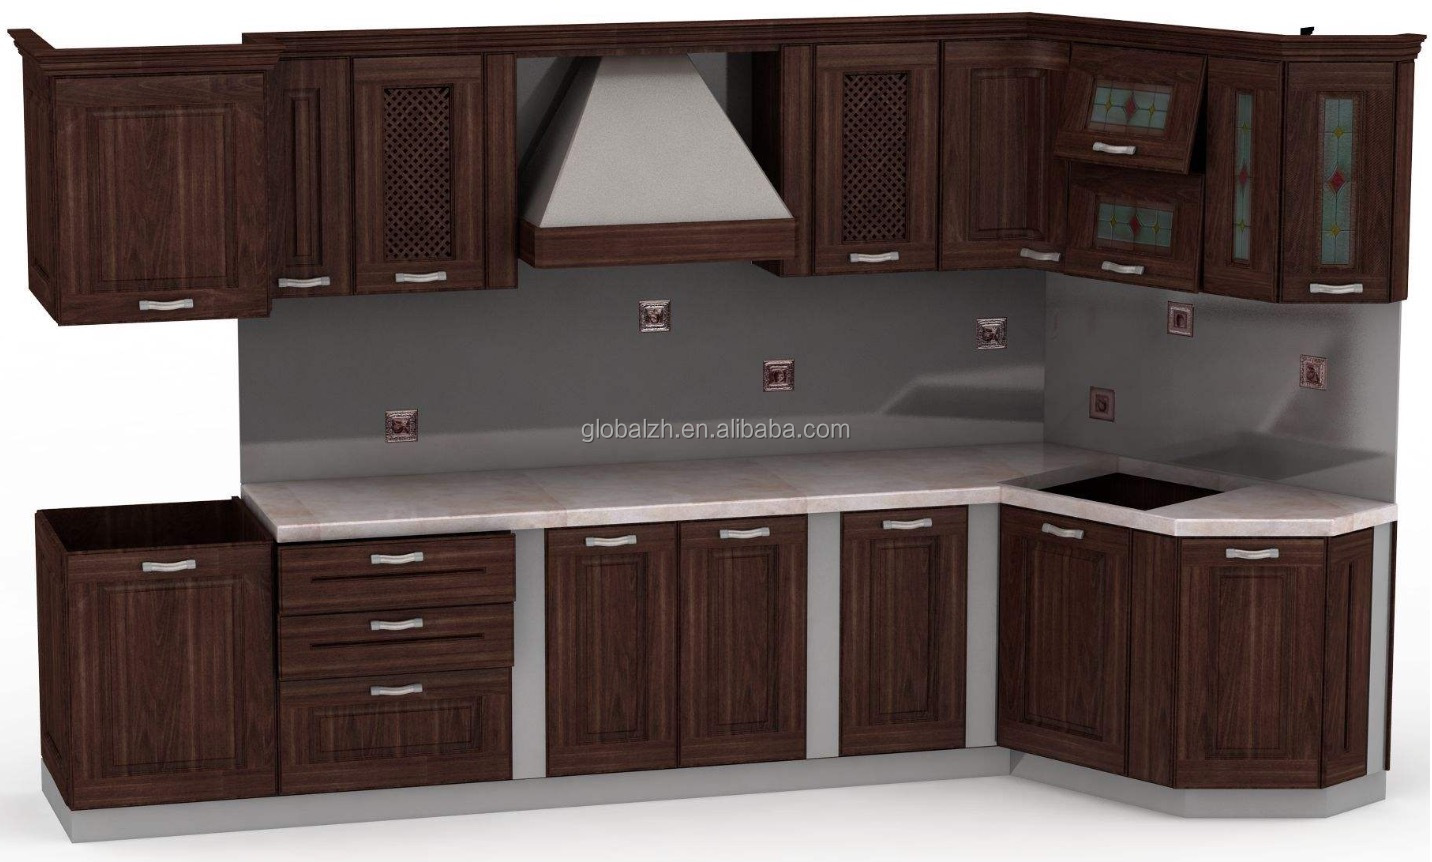 Free Used Kitchen Cabinets Craigslist Made In China Kitchen Cabinet Factory Buy High Quality Free Used Kitchen Cabinets Used Kitchen Cabinets Craigslist Kitchen Cabinet Product On Alibaba Com